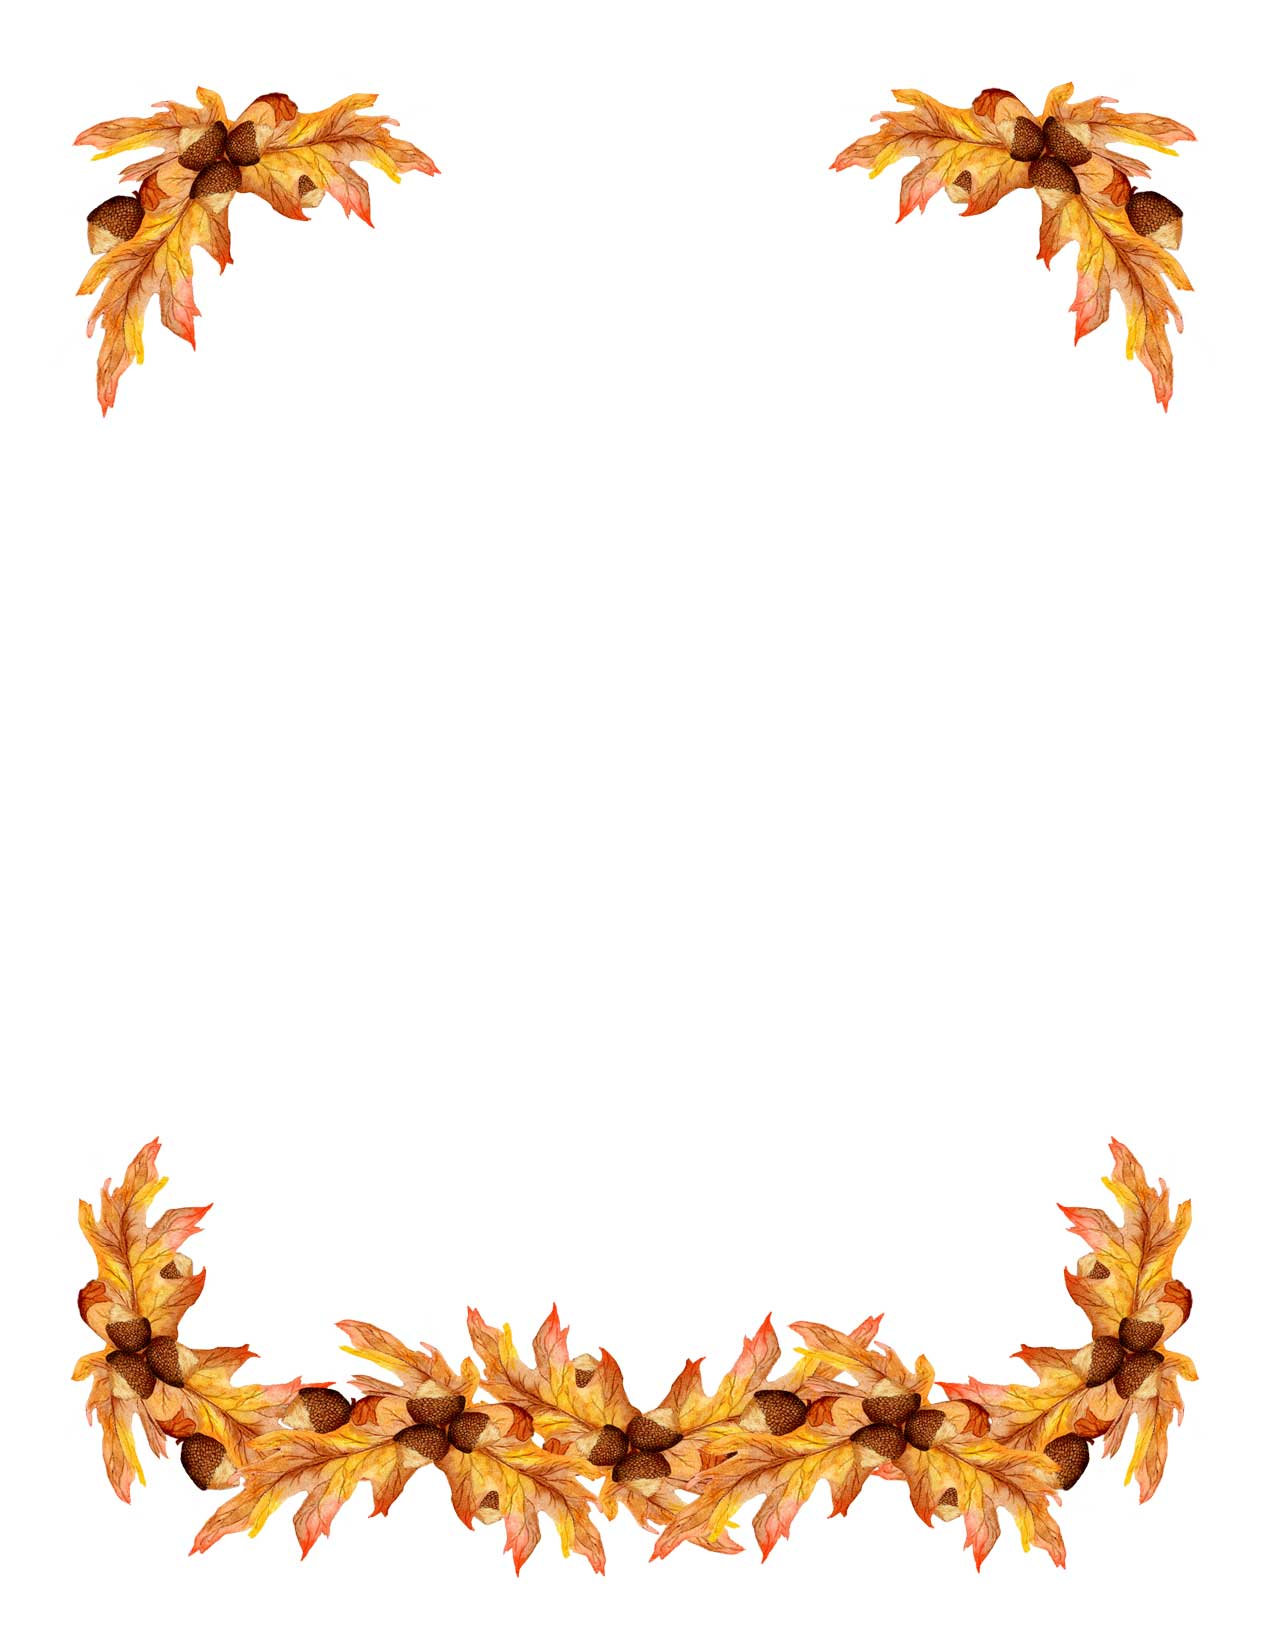 Clip Art Fall Border Clip Art fall leaves border clipart kid each of the above clip art borders is sure to make your designs and